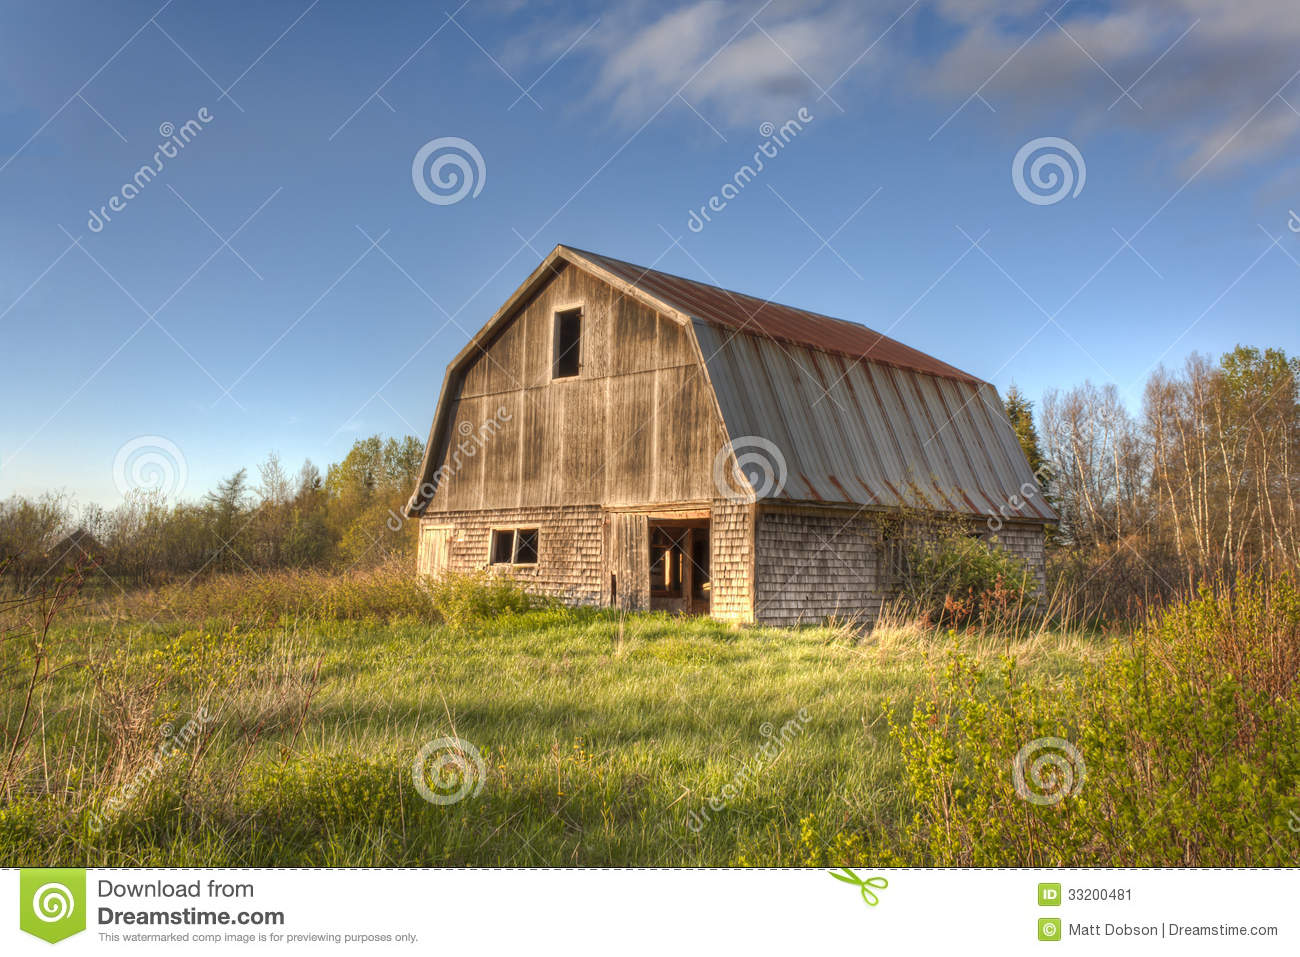 Old Wooden Barn Stock Image - Image: 33200481